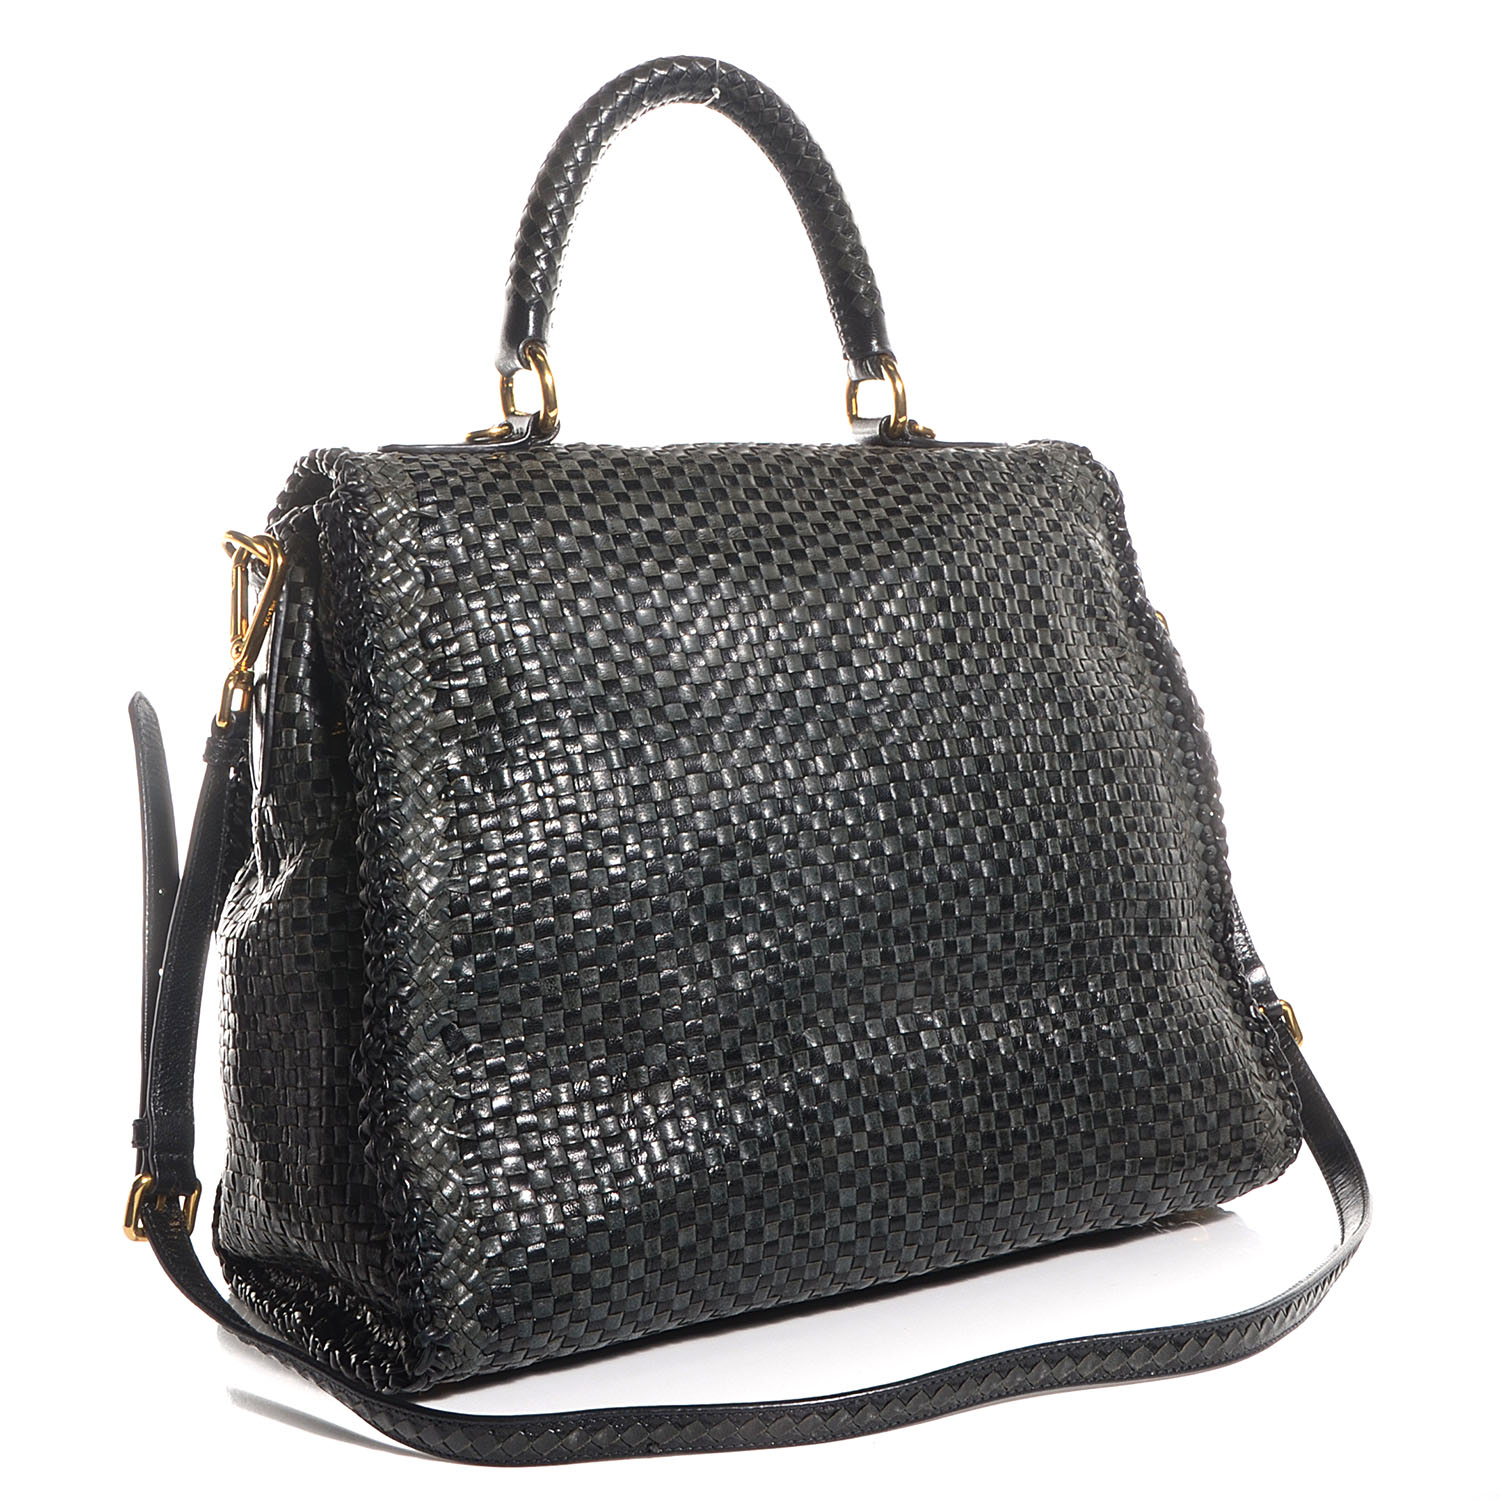 fce5d62d4080 PRADA Woven Goatskin Madras Top Handle Satchel Baltico Nero. Empty.  Pinch/Zoom